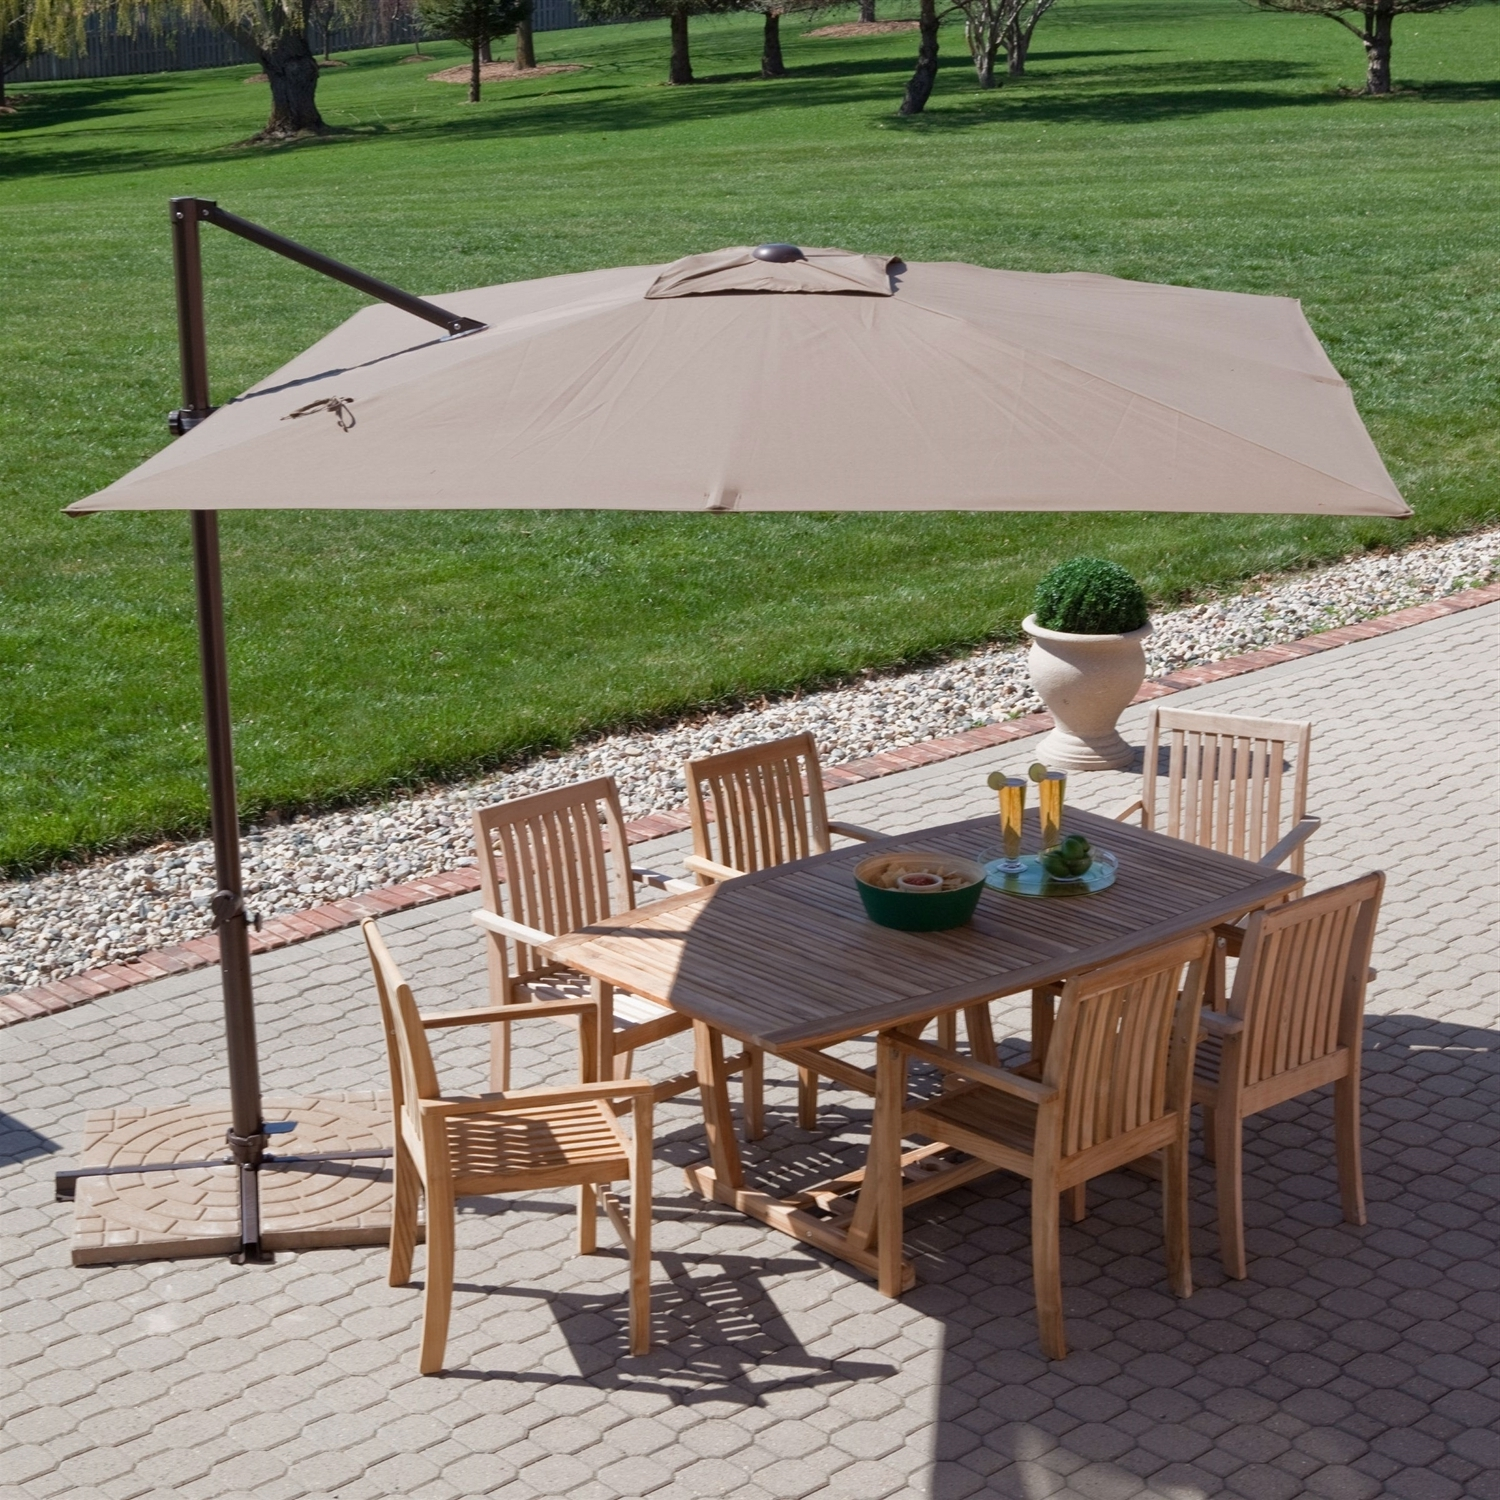 A Guide To Buying Offset Patio Umbrella – Blogbeen Inside Widely Used Patio Umbrellas With Table (Gallery 10 of 20)